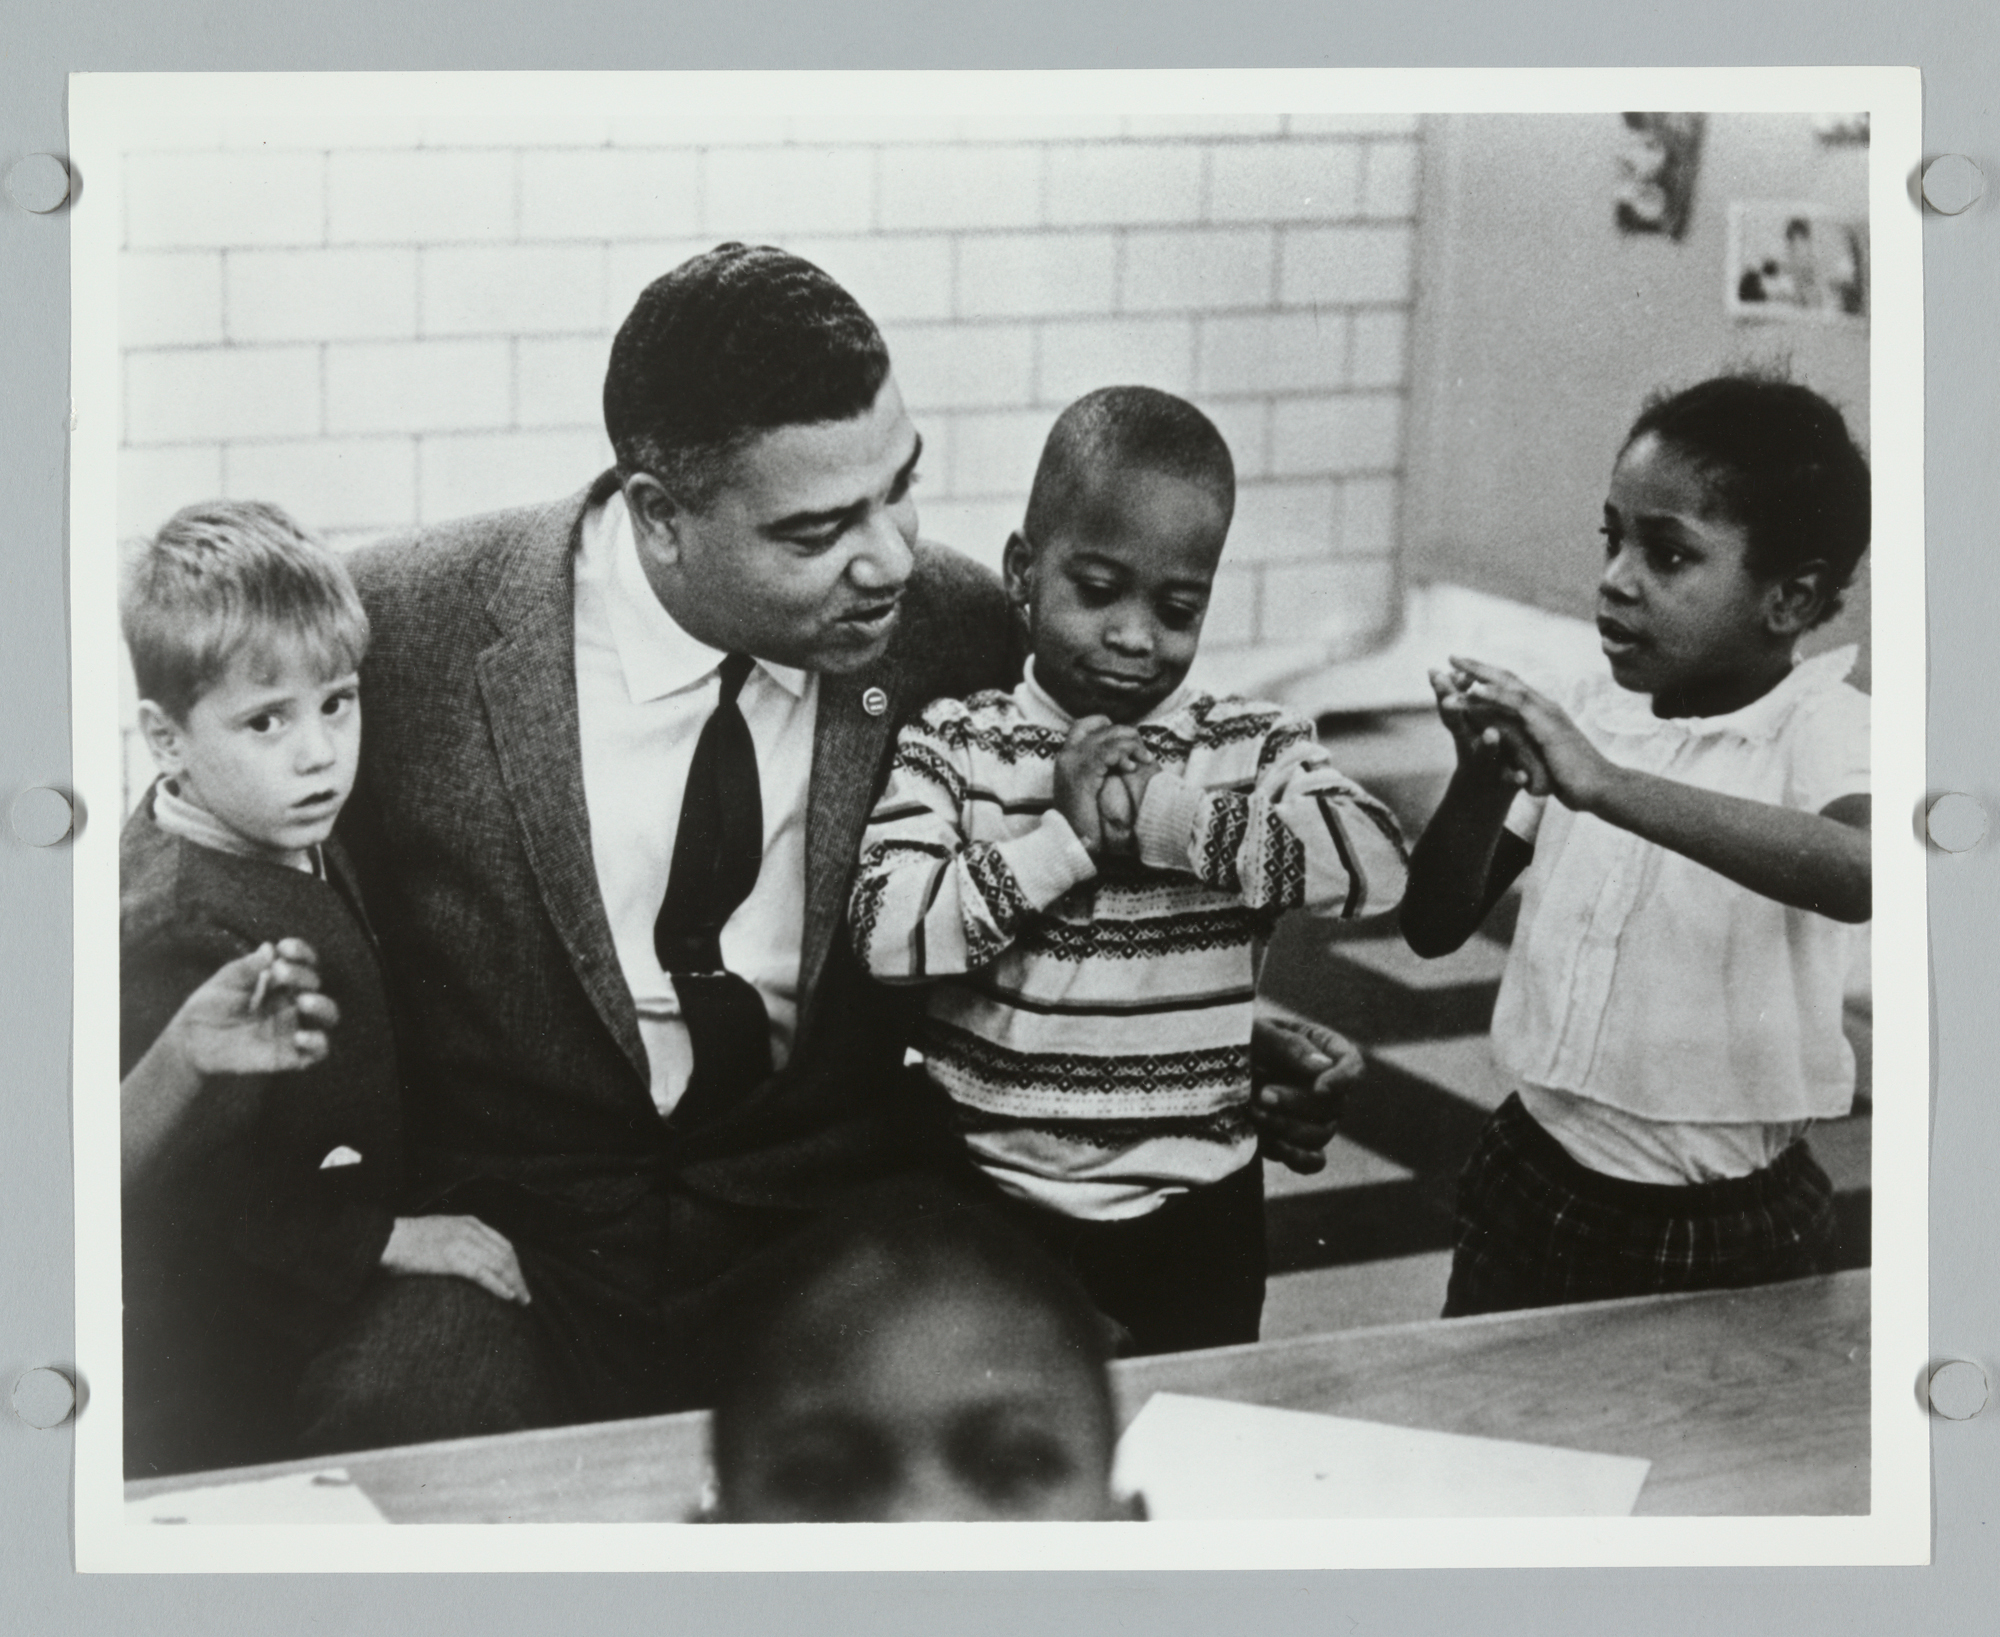 Whitney M. Young with Children in School Setting